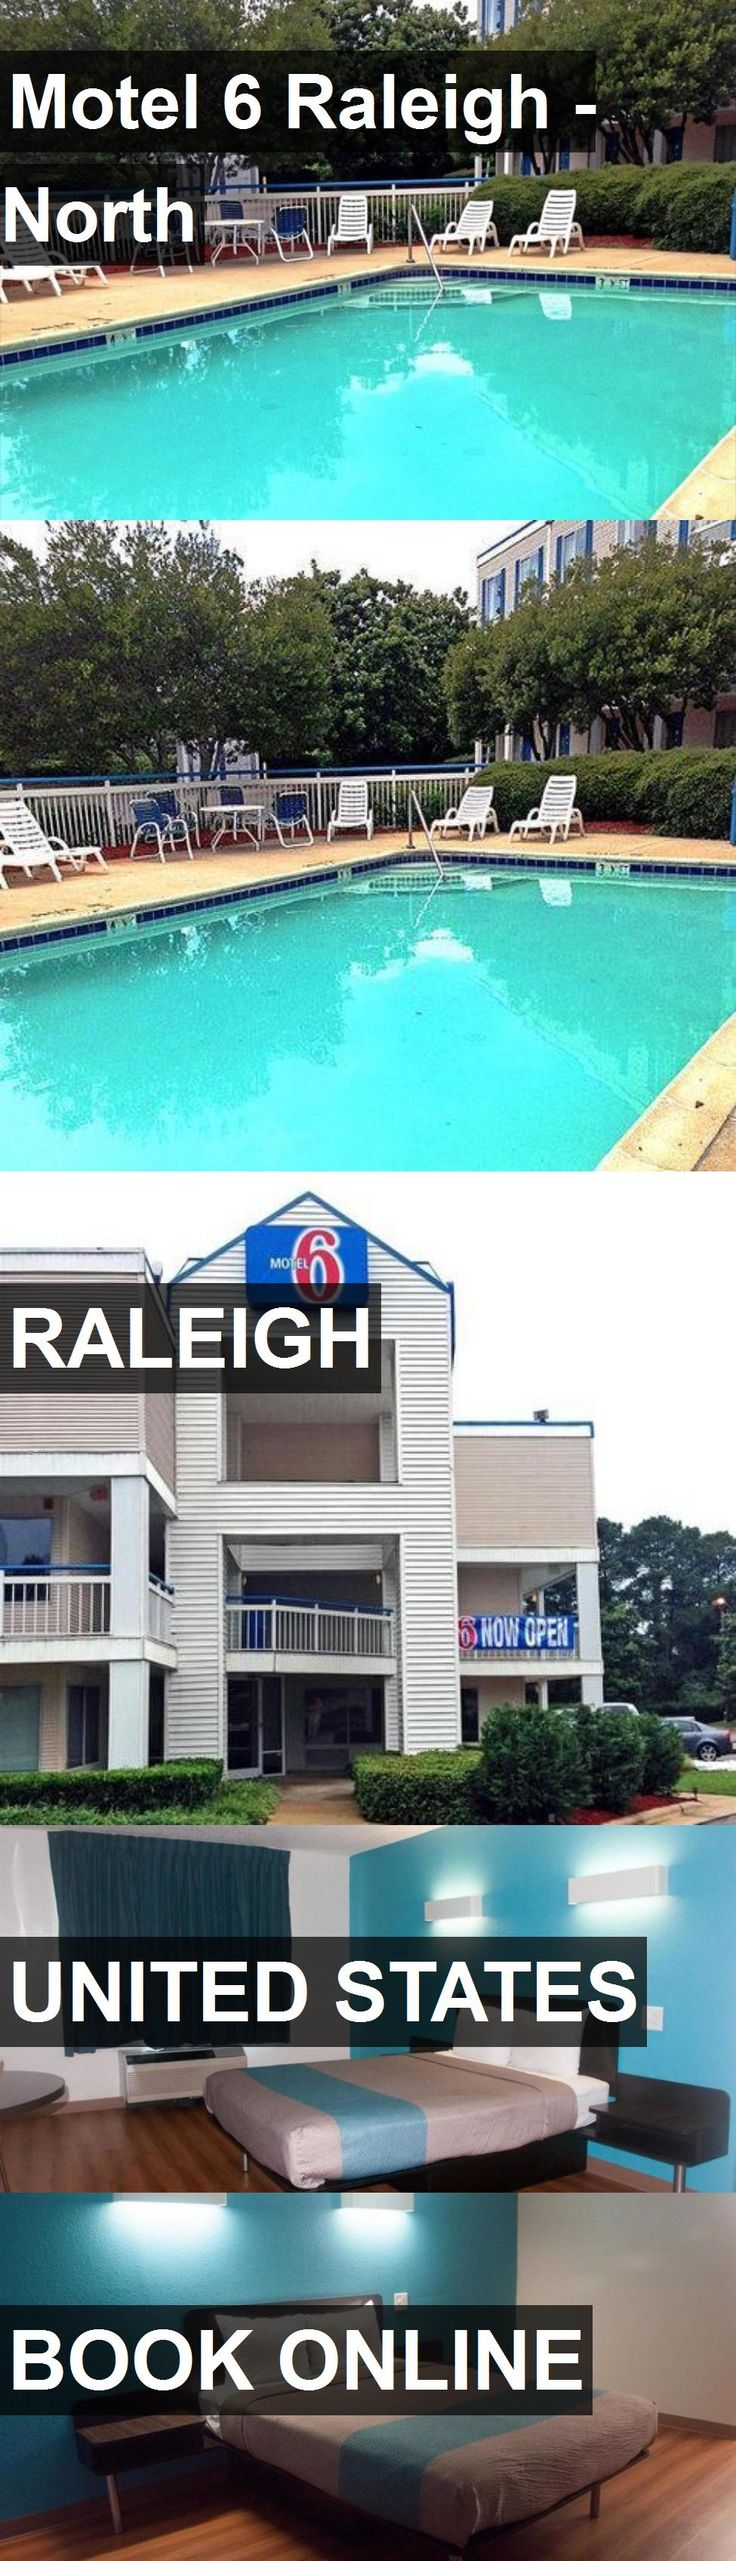 Hotel Motel 6 Raleigh - North in Raleigh, United States. For more information, photos, reviews and best prices please follow the link. #UnitedStates #Raleigh #Motel6Raleigh-North #hotel #travel #vacation